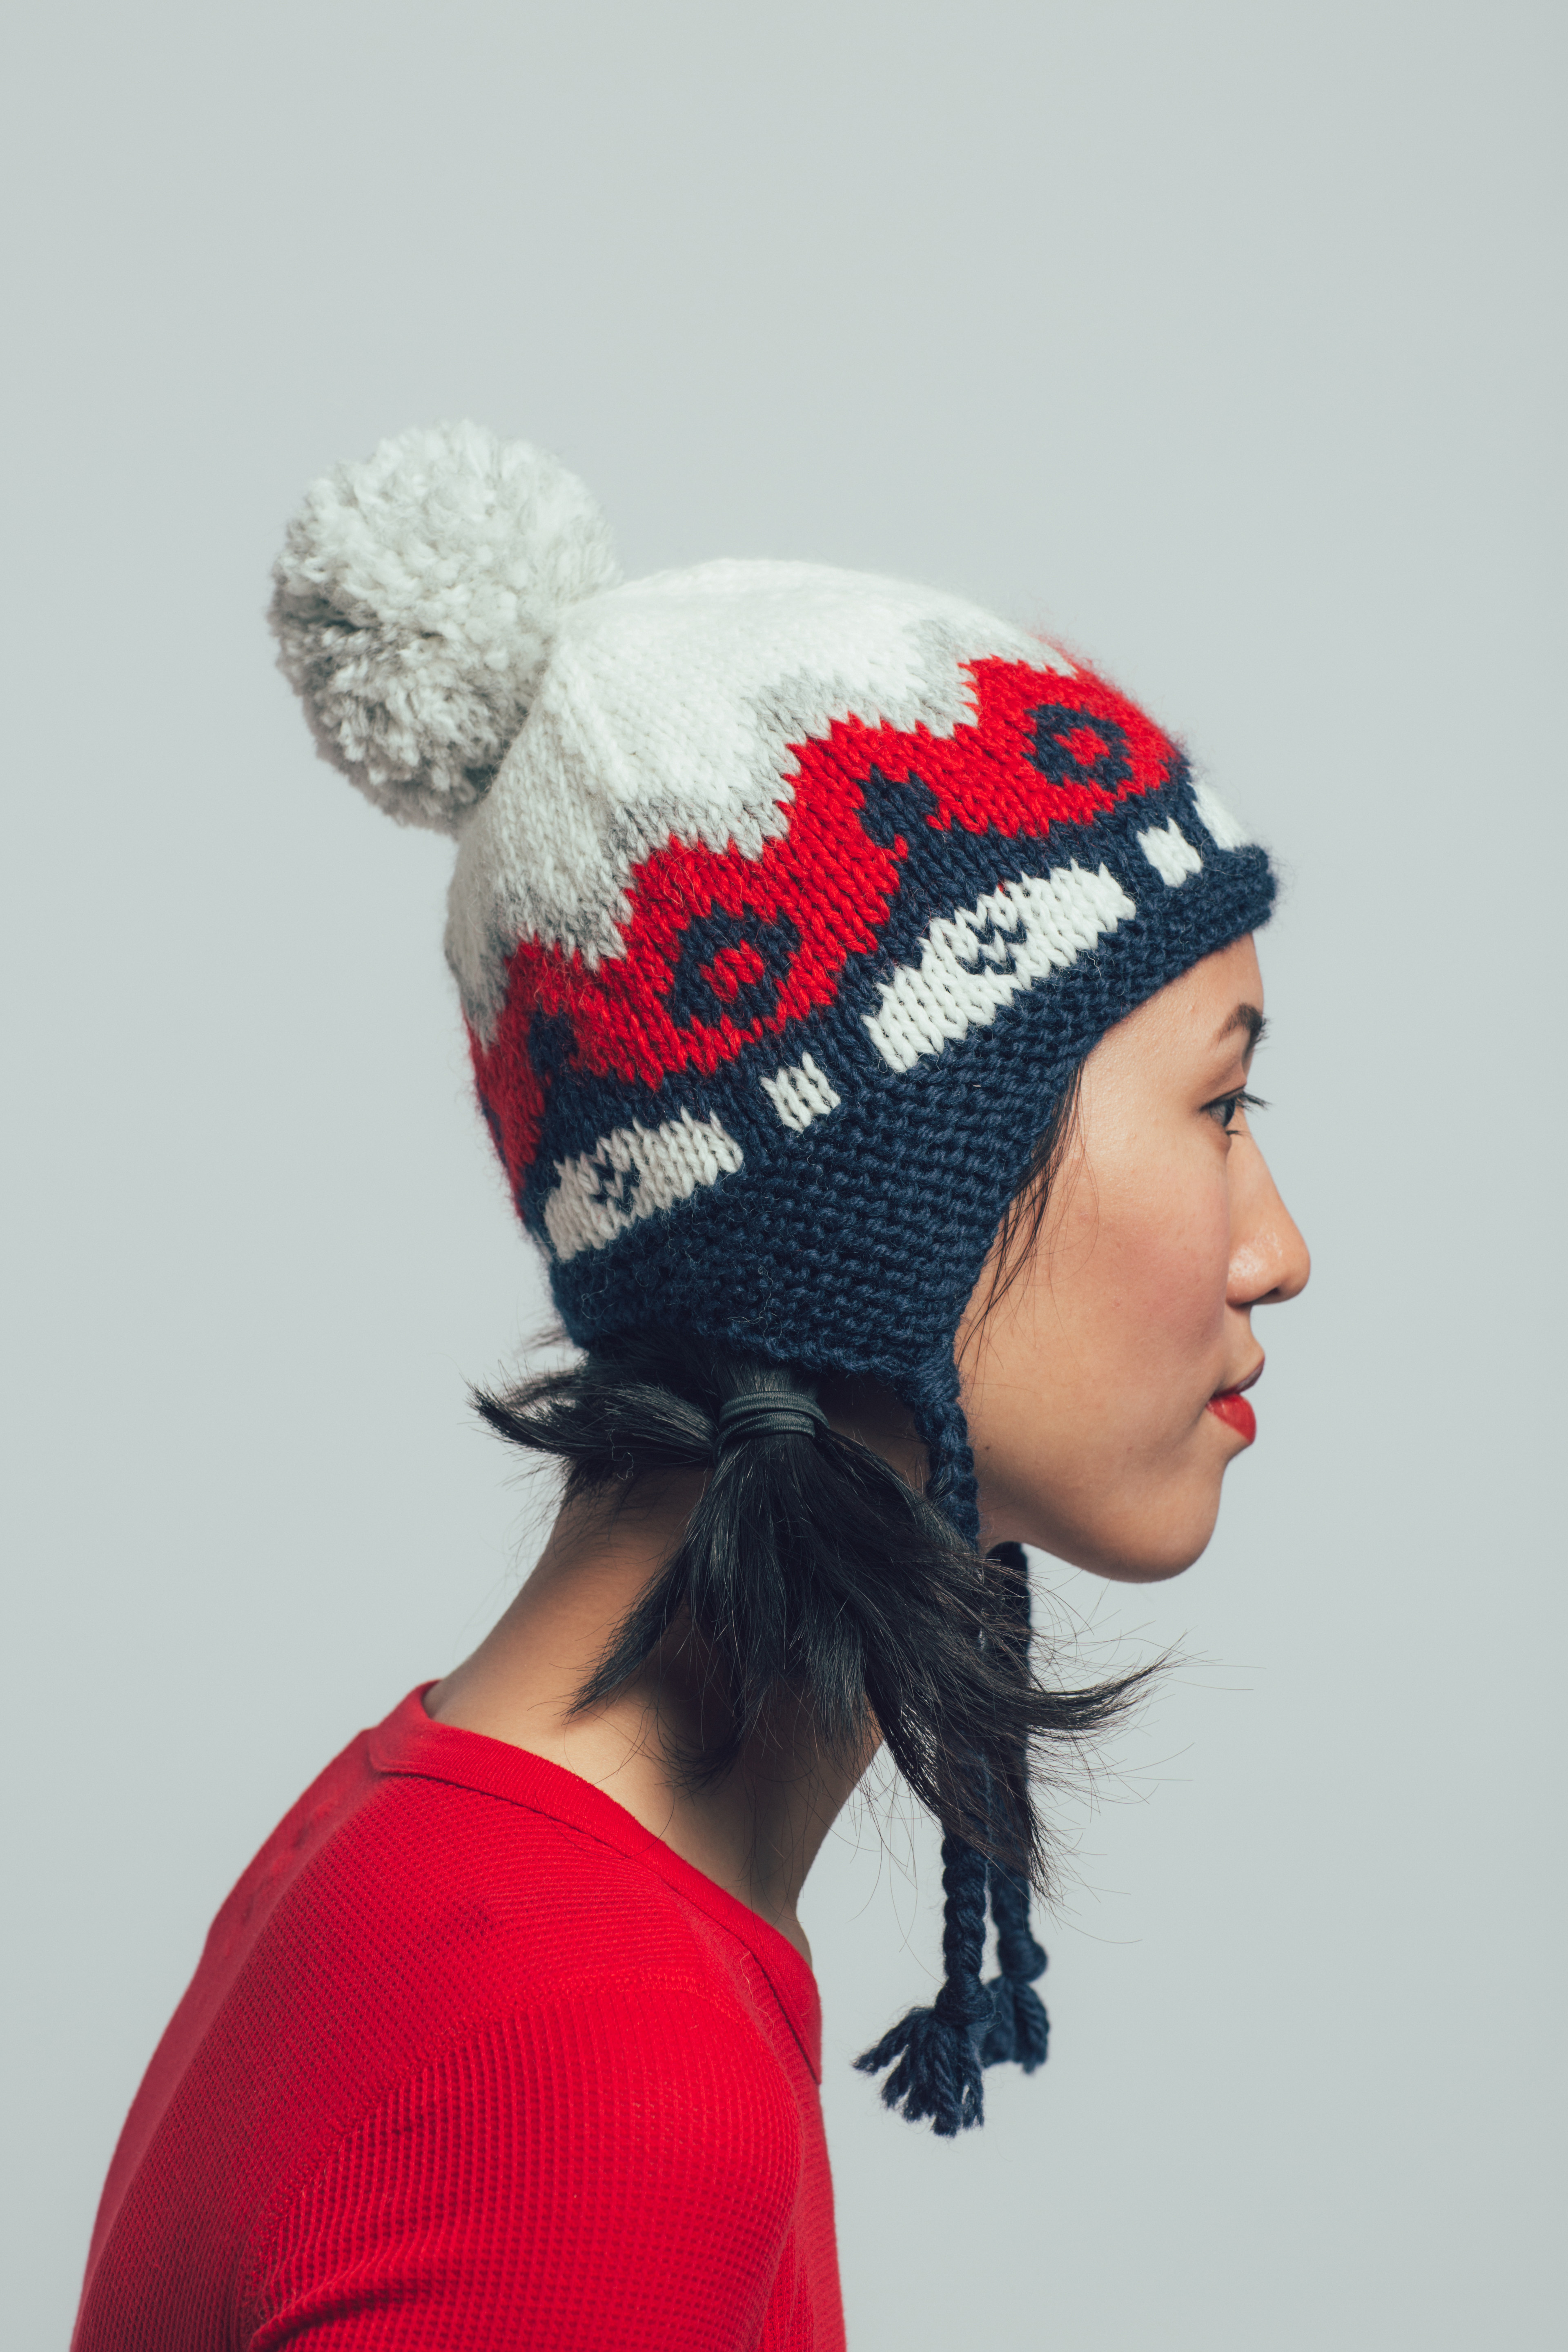 Snowball Cap by Jesie Ostermiller from knitscene Winter 2016